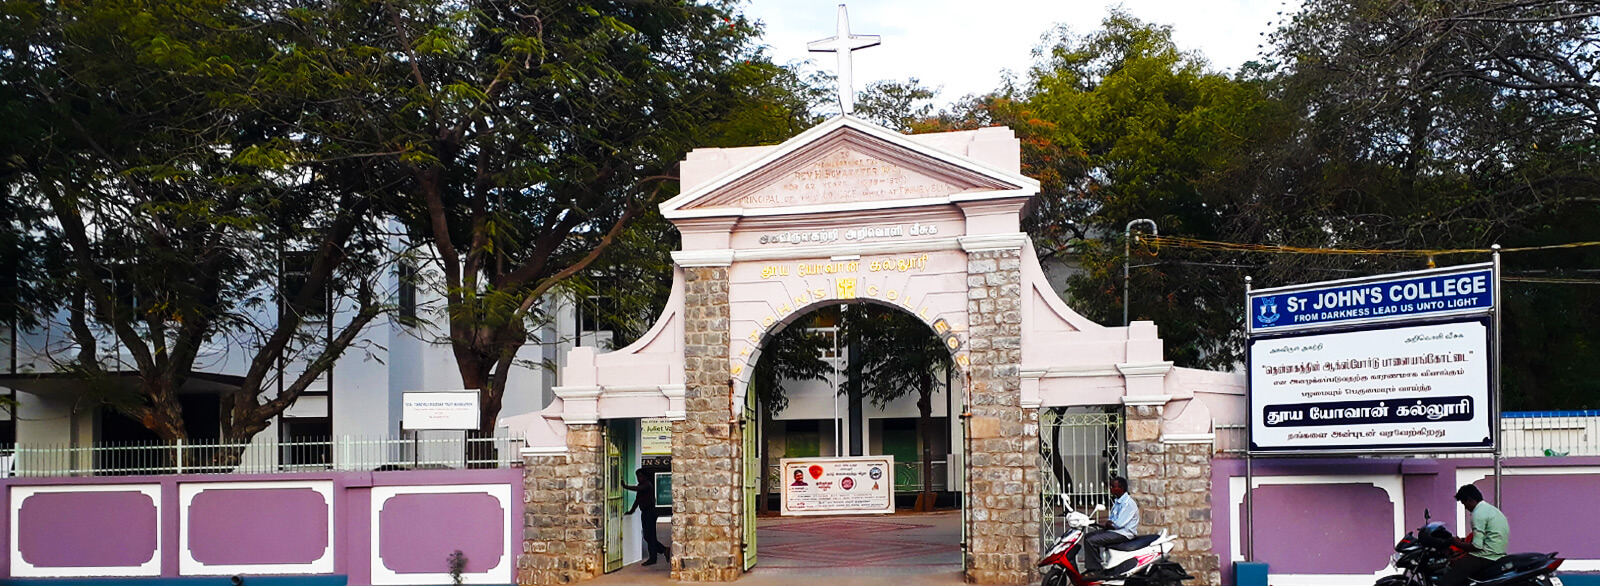 St.John's College Front Gate